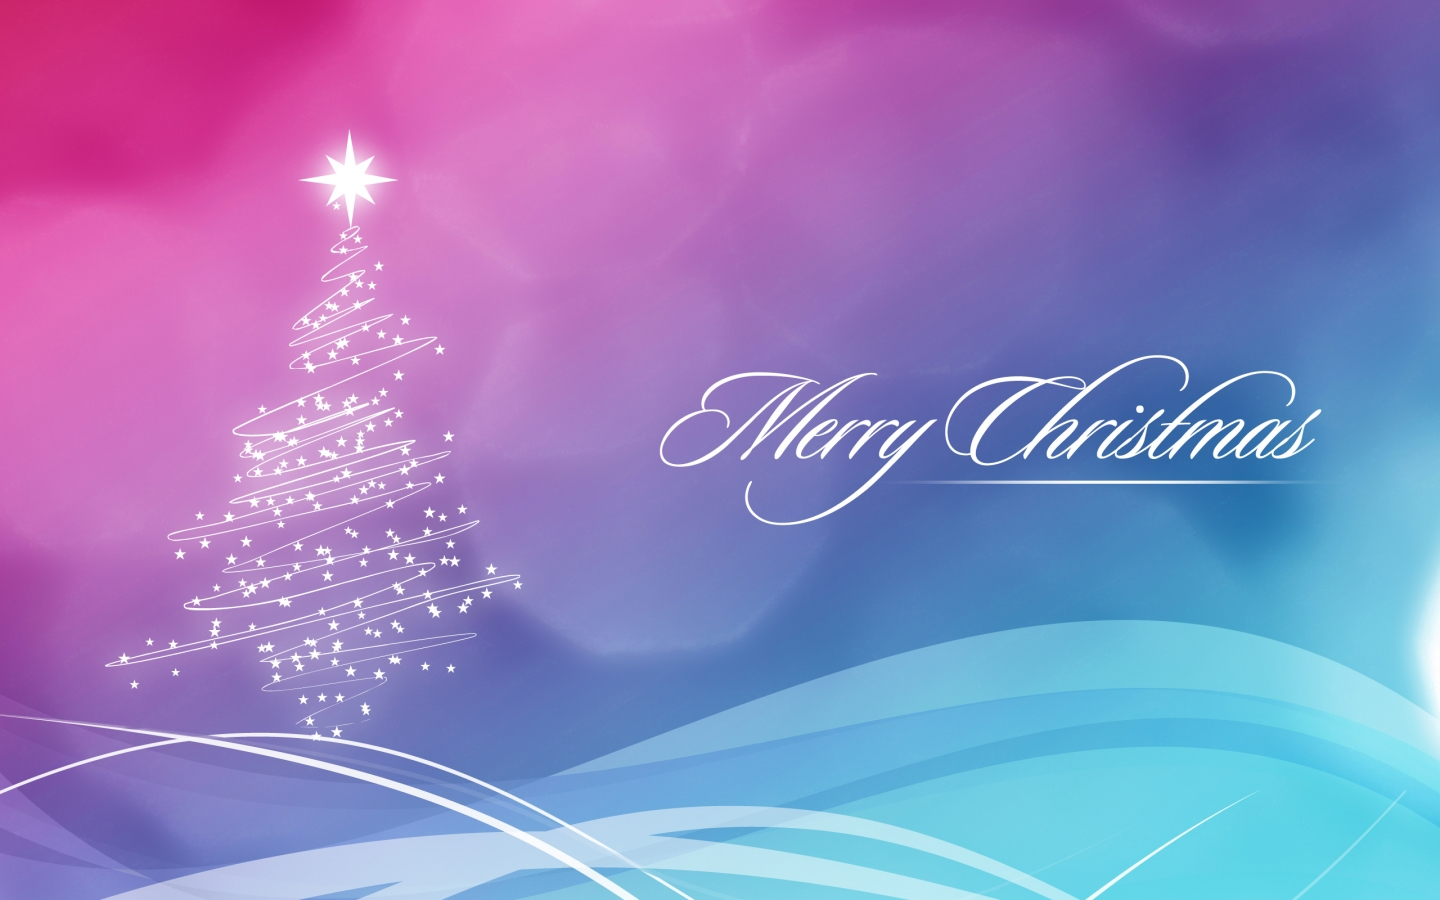 merry christmas wallpapers | merry christmas stock photos